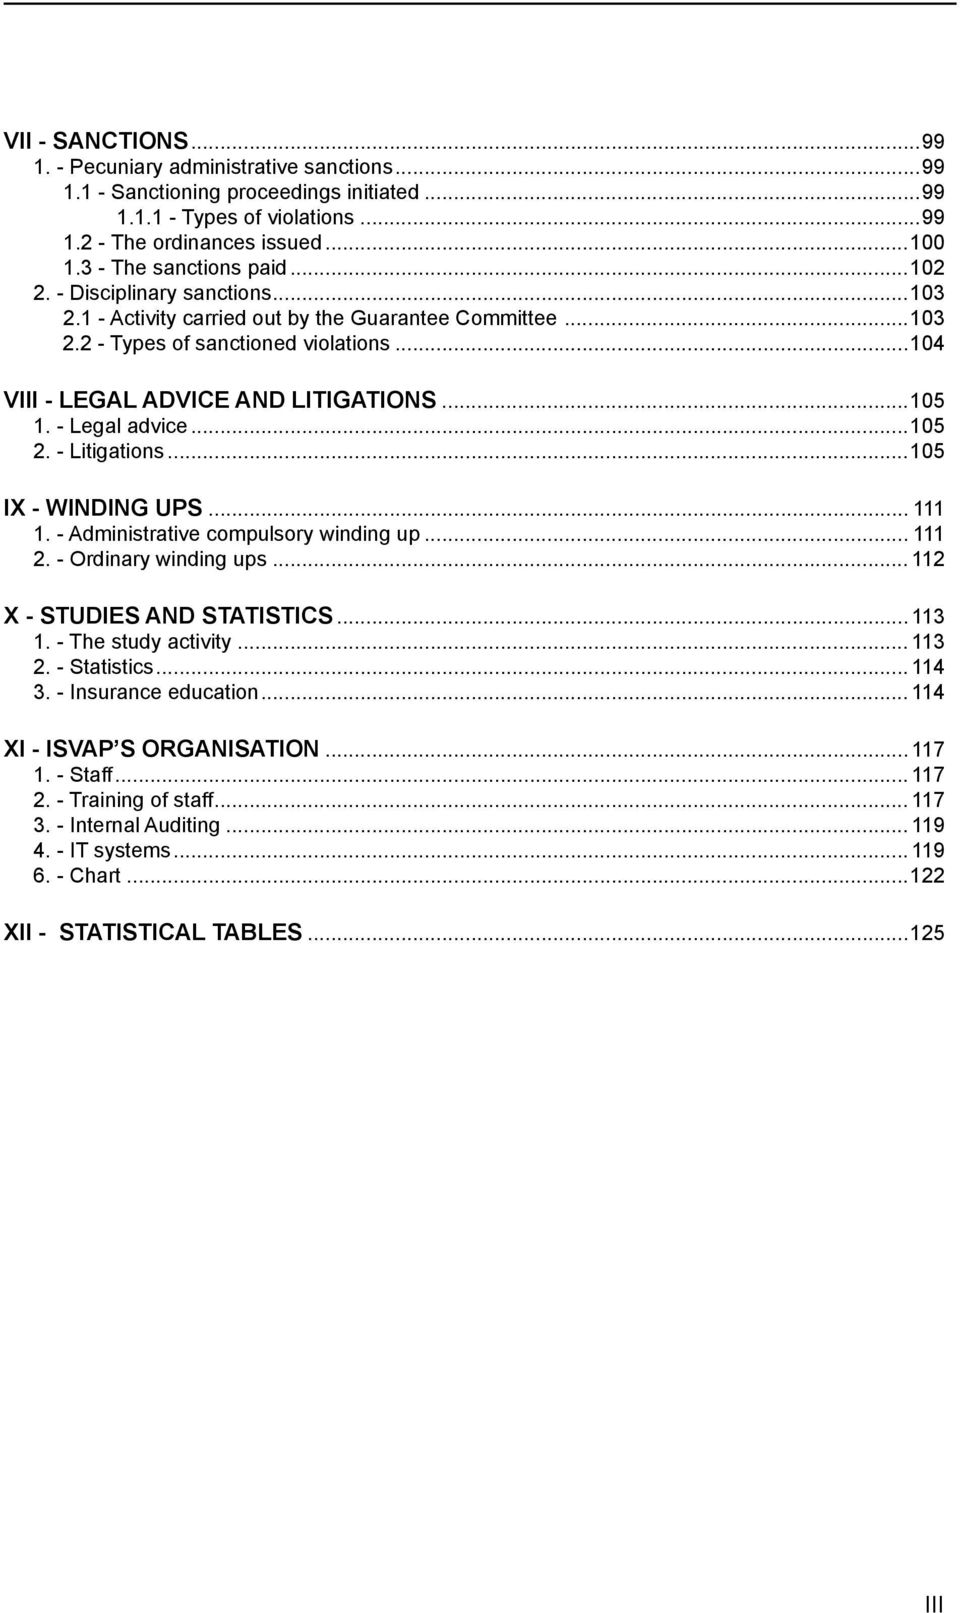 ..105 1. - Legal advice...105 2. - Litigations...105 IX - WINDING UPS... 111 1. - Administrative compulsory winding up... 111 2. - Ordinary winding ups... 112 X - STUDIES AND STATISTICS... 113 1.